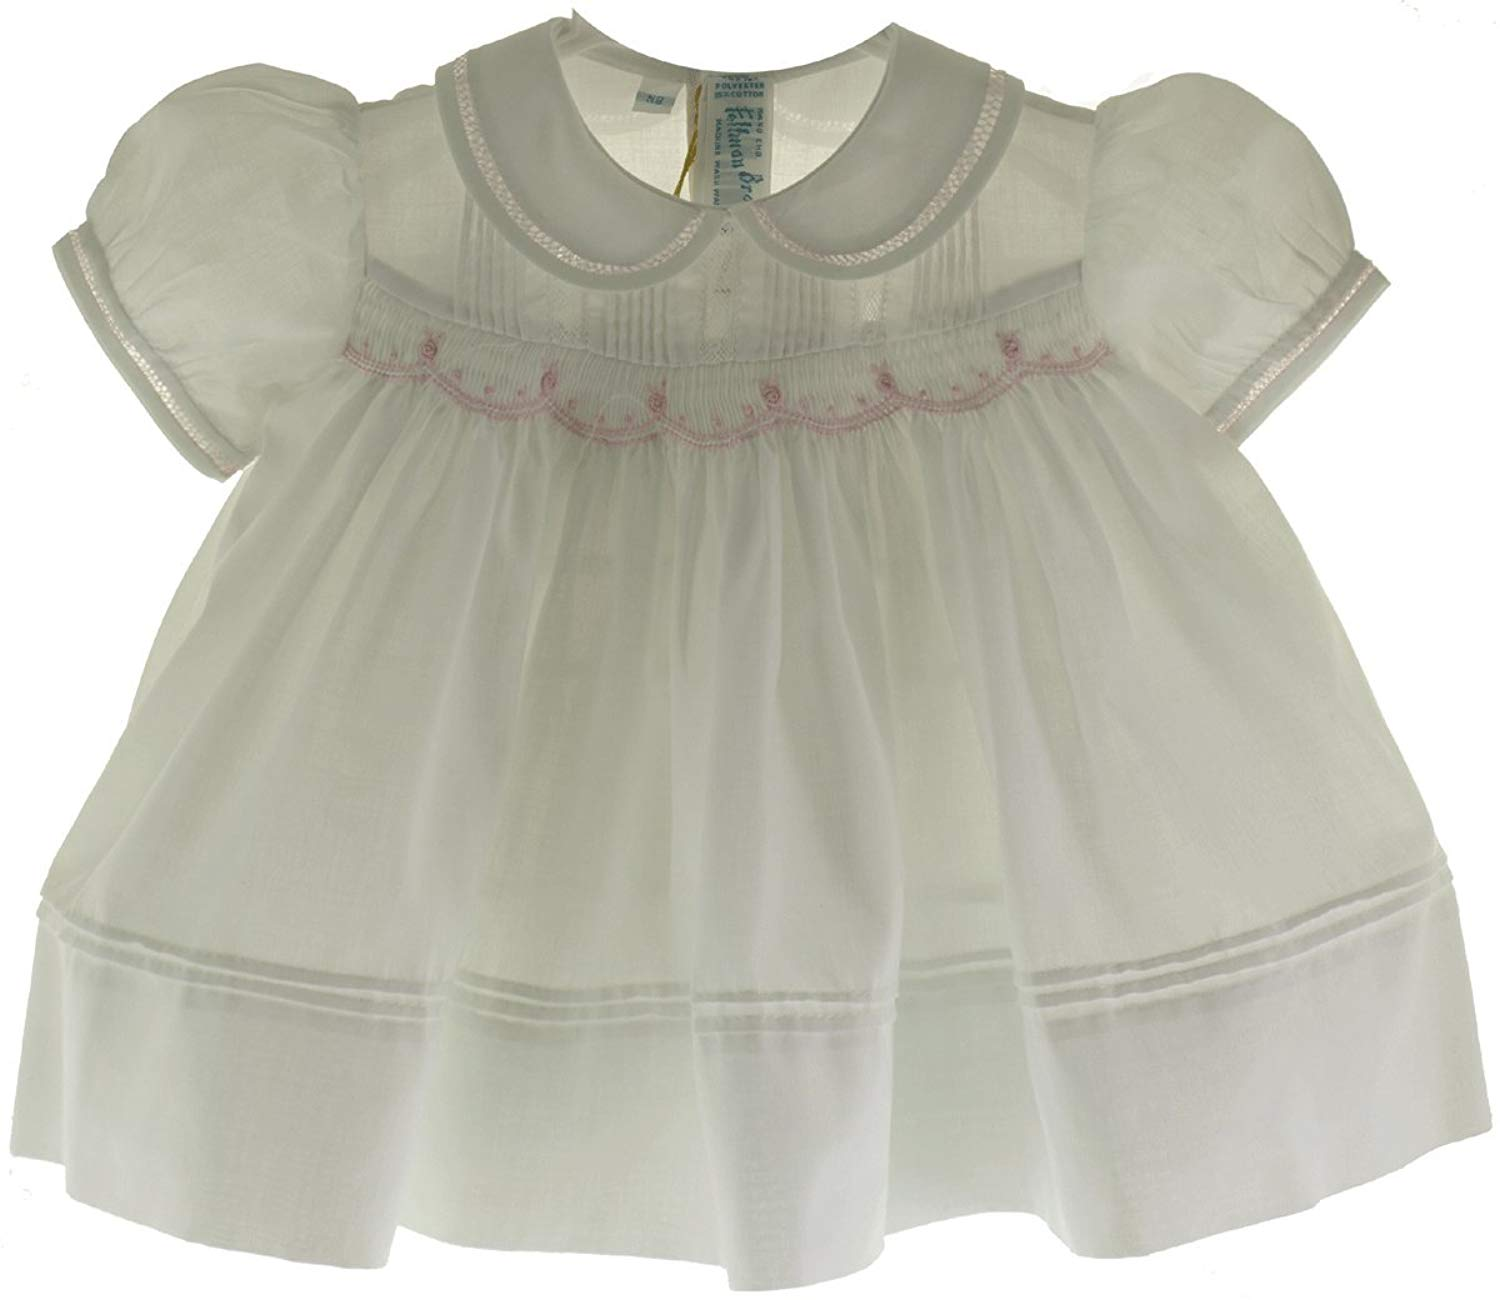 c326fe410873 Get Quotations · Feltman Brothers Newborn Girls White Smocked Dress with  Pink Flowers